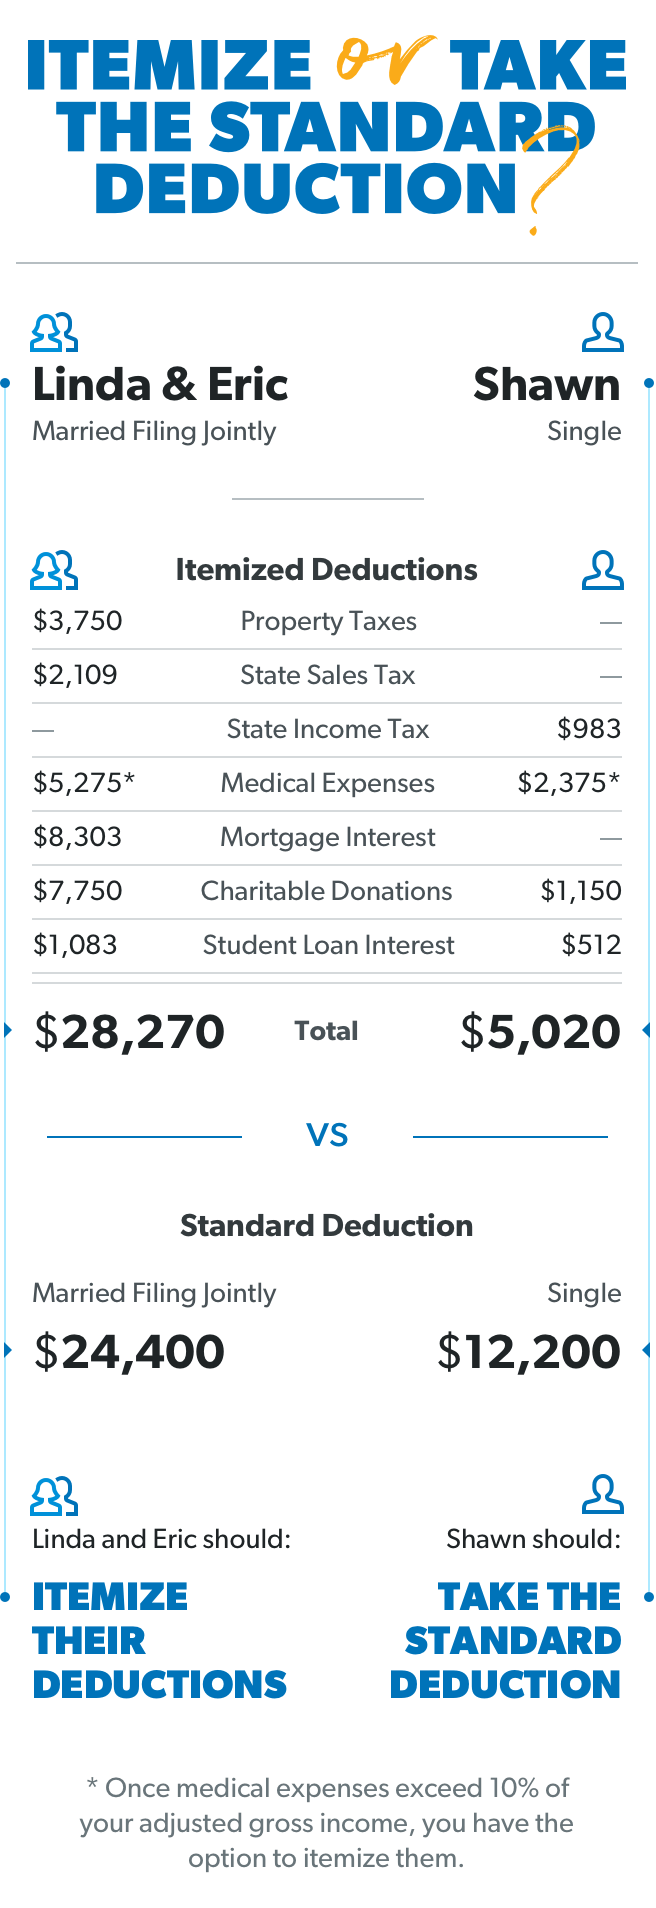 What Is a Tax Deduction? | DaveRamsey.com